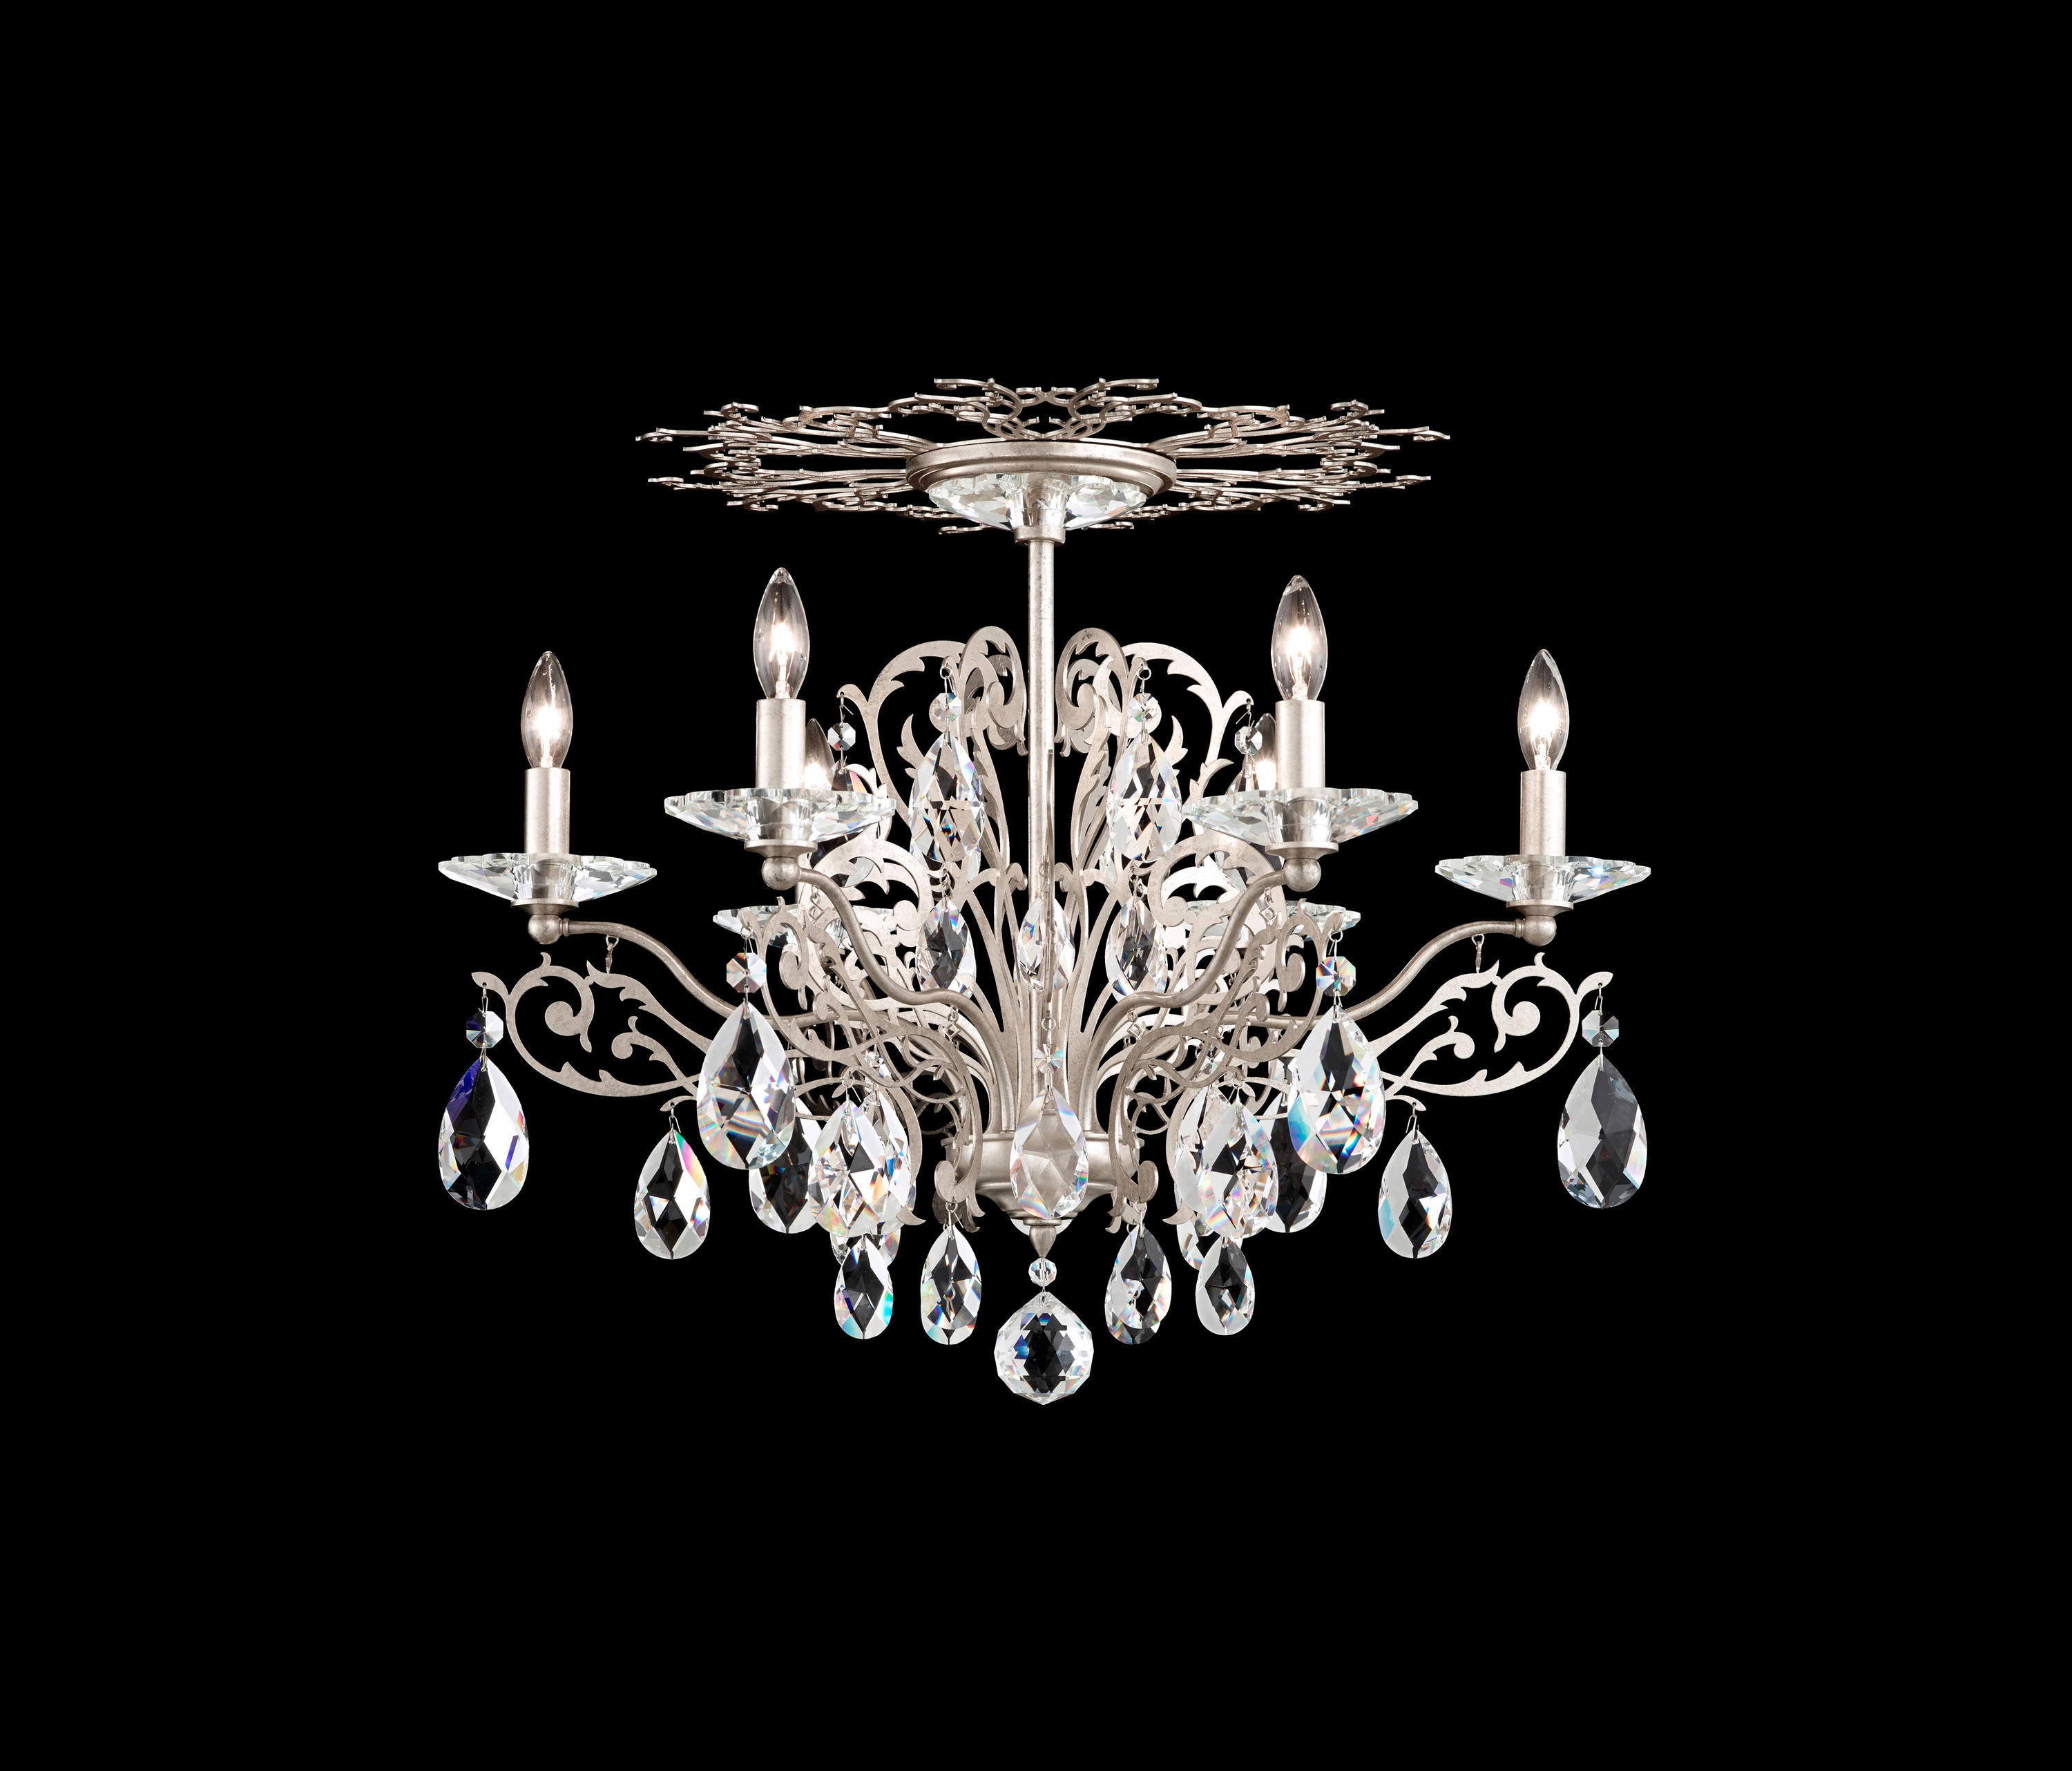 chandelier pin chrome crystal in finish metal chandeliers with elements swarovski pendants carved